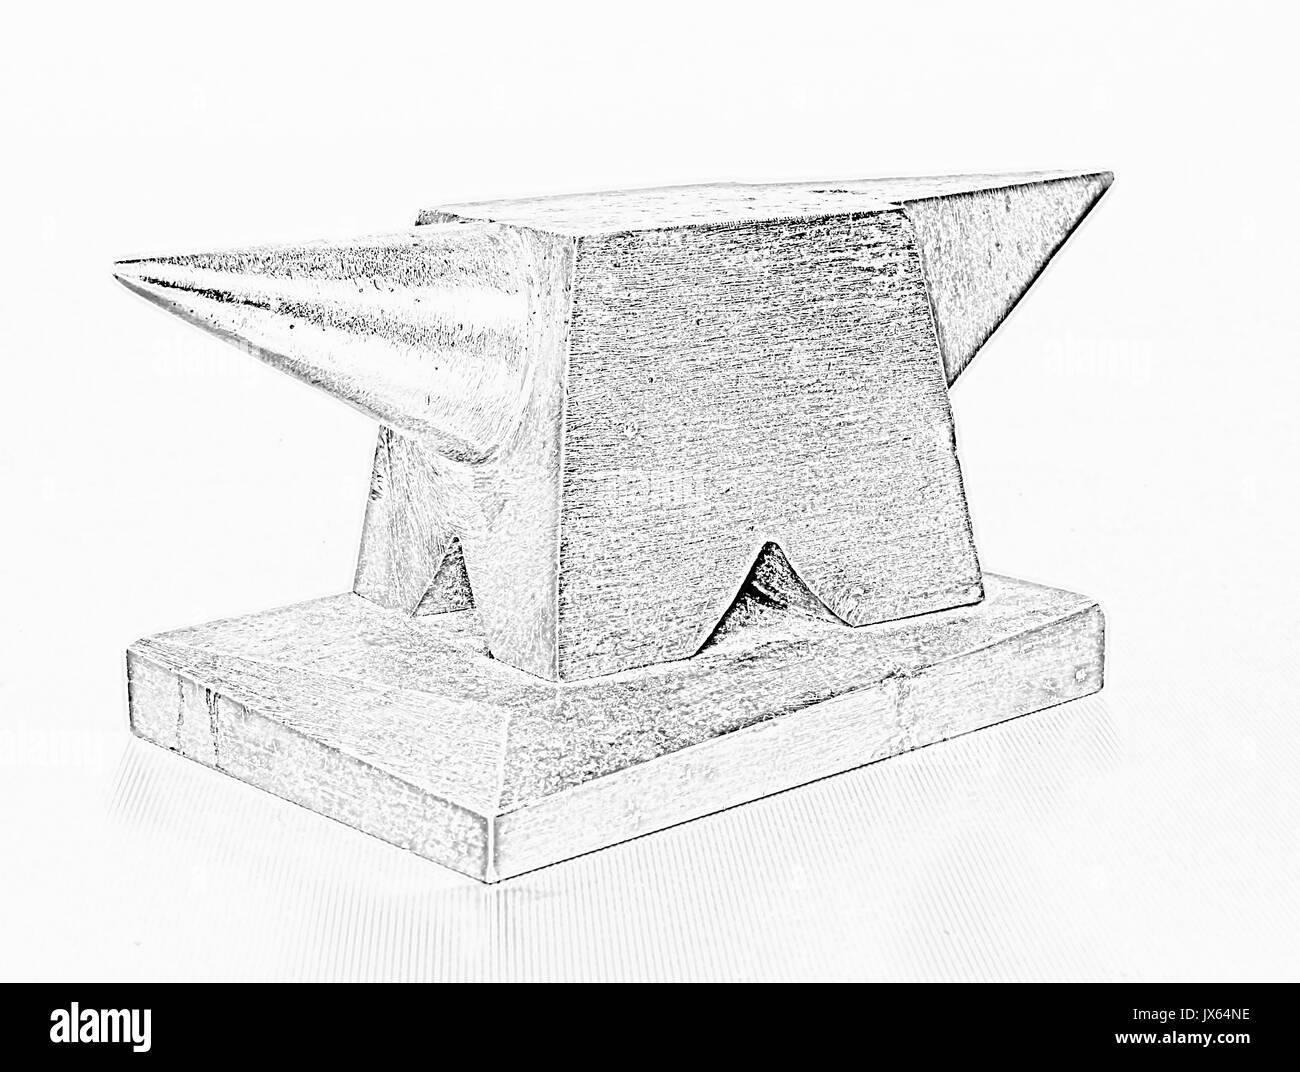 Anvil Black and White Stock Photos & Images - Alamy